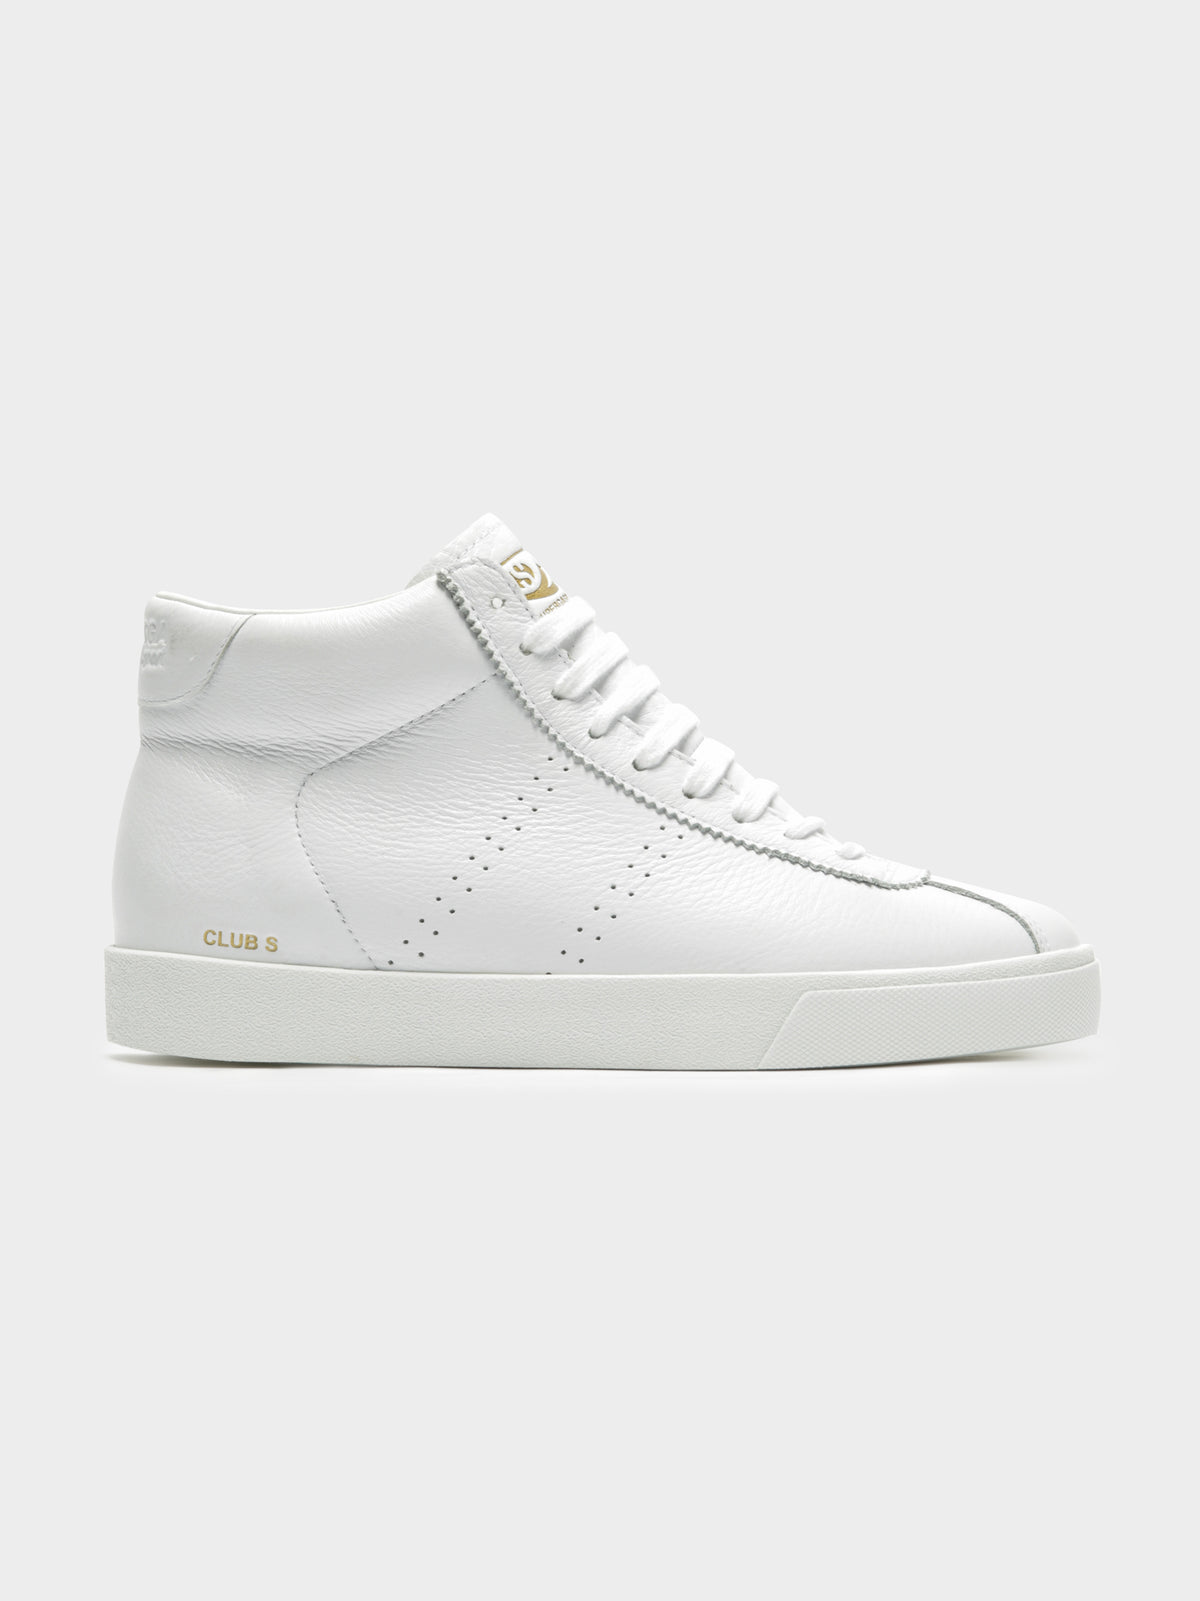 Womens 2871 Club S Comfleau High Top Sneakers in White